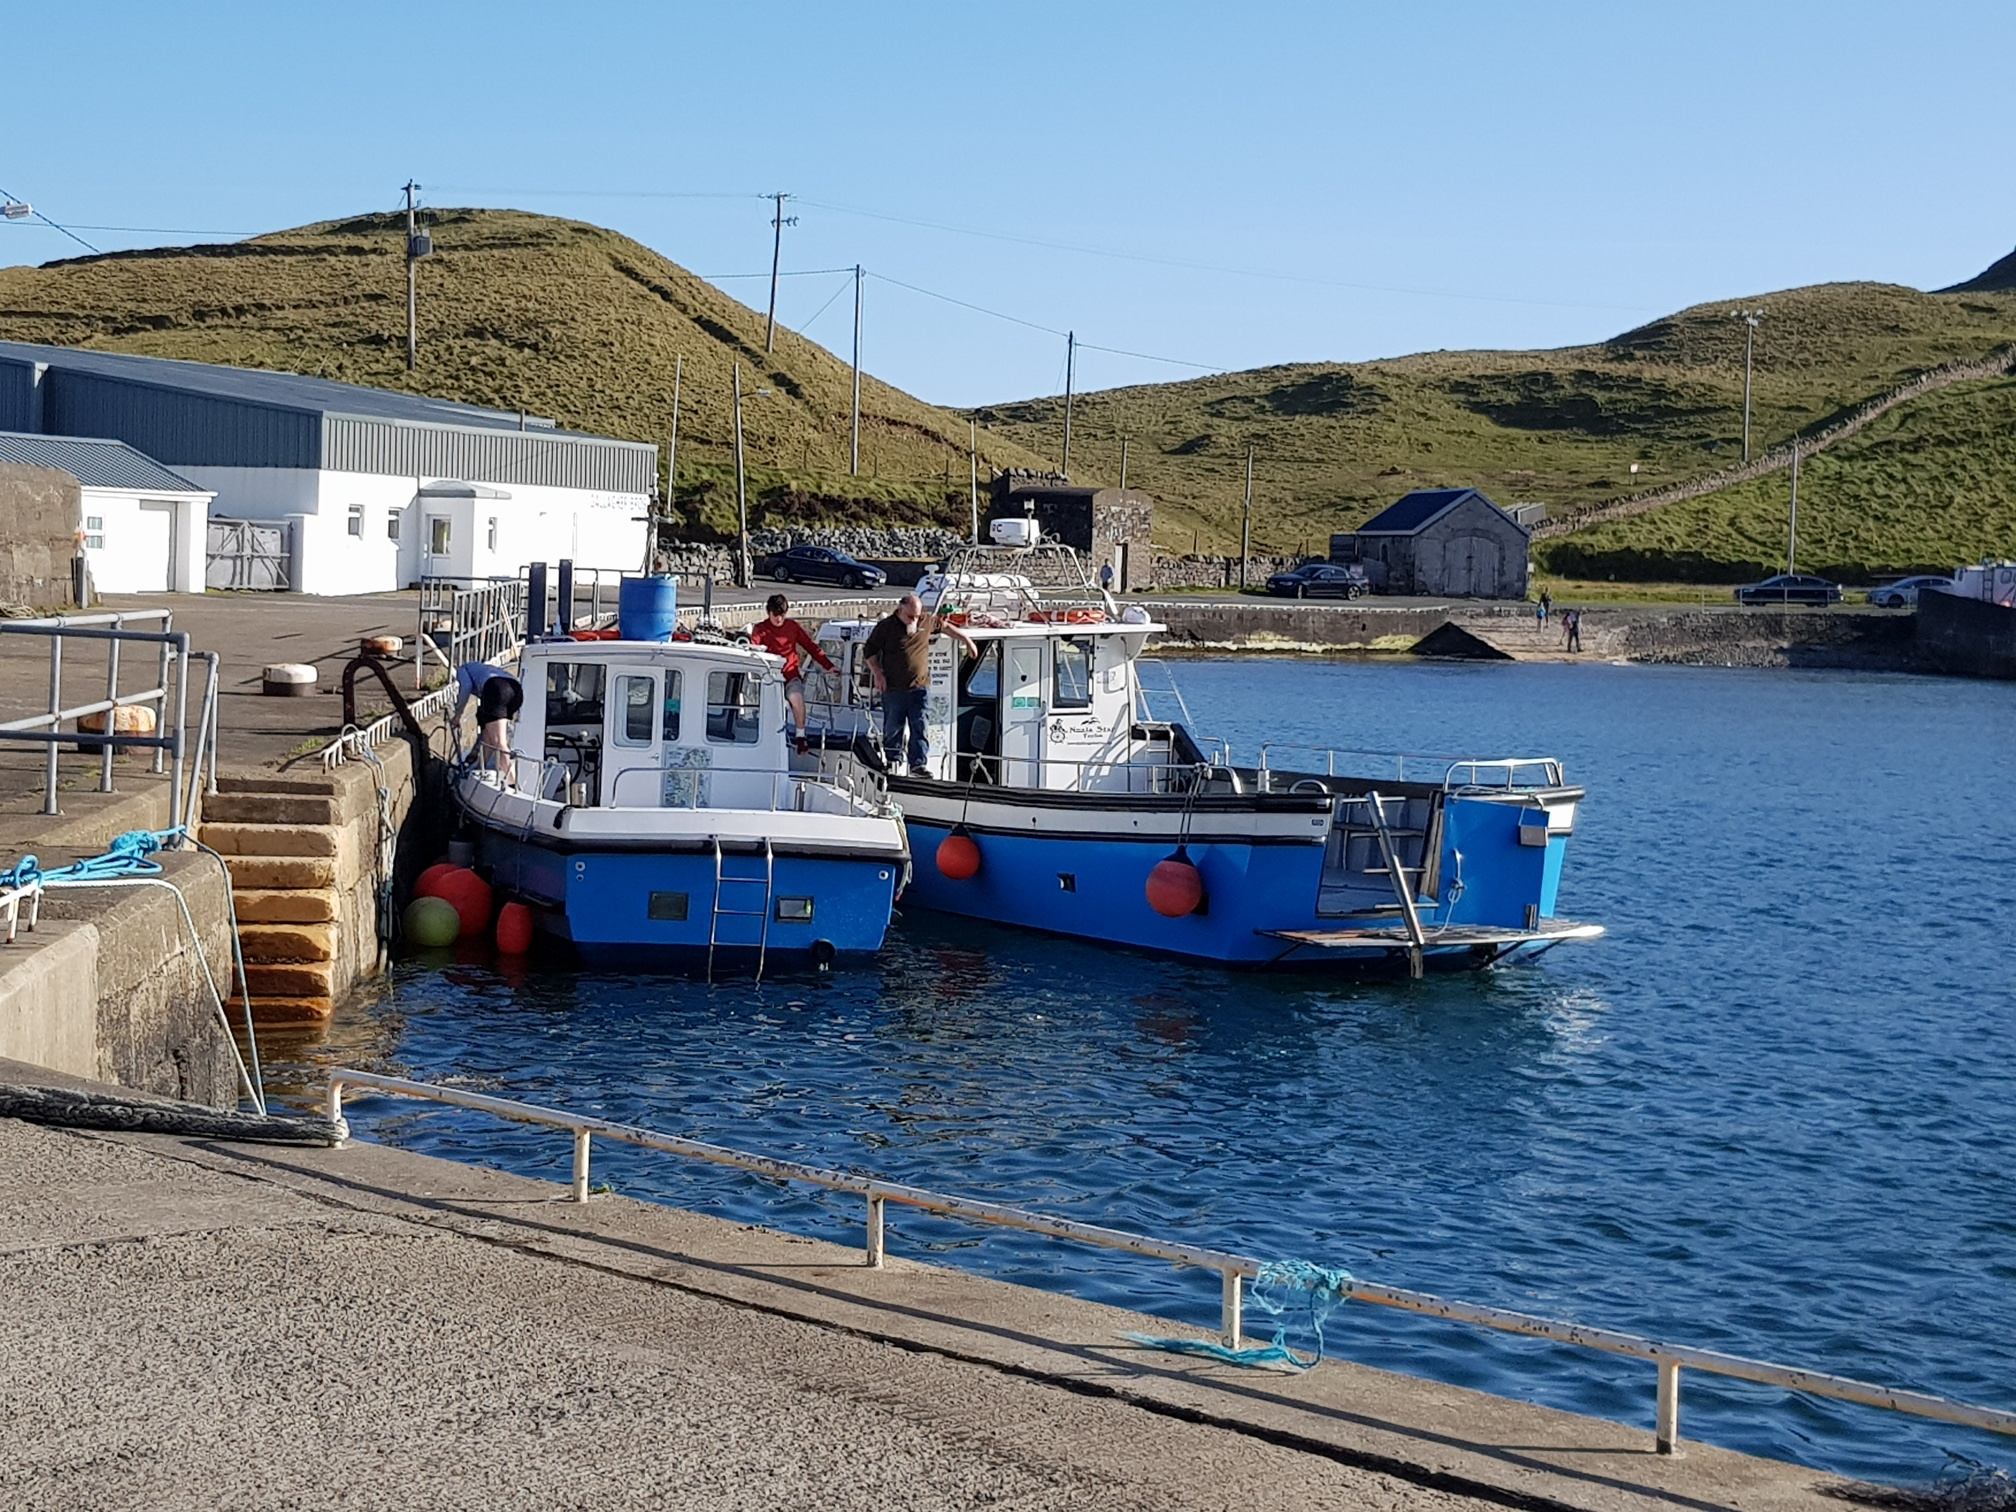 Boat at Teelin Harbour ready to leave en route to see the Bunglas cliffs